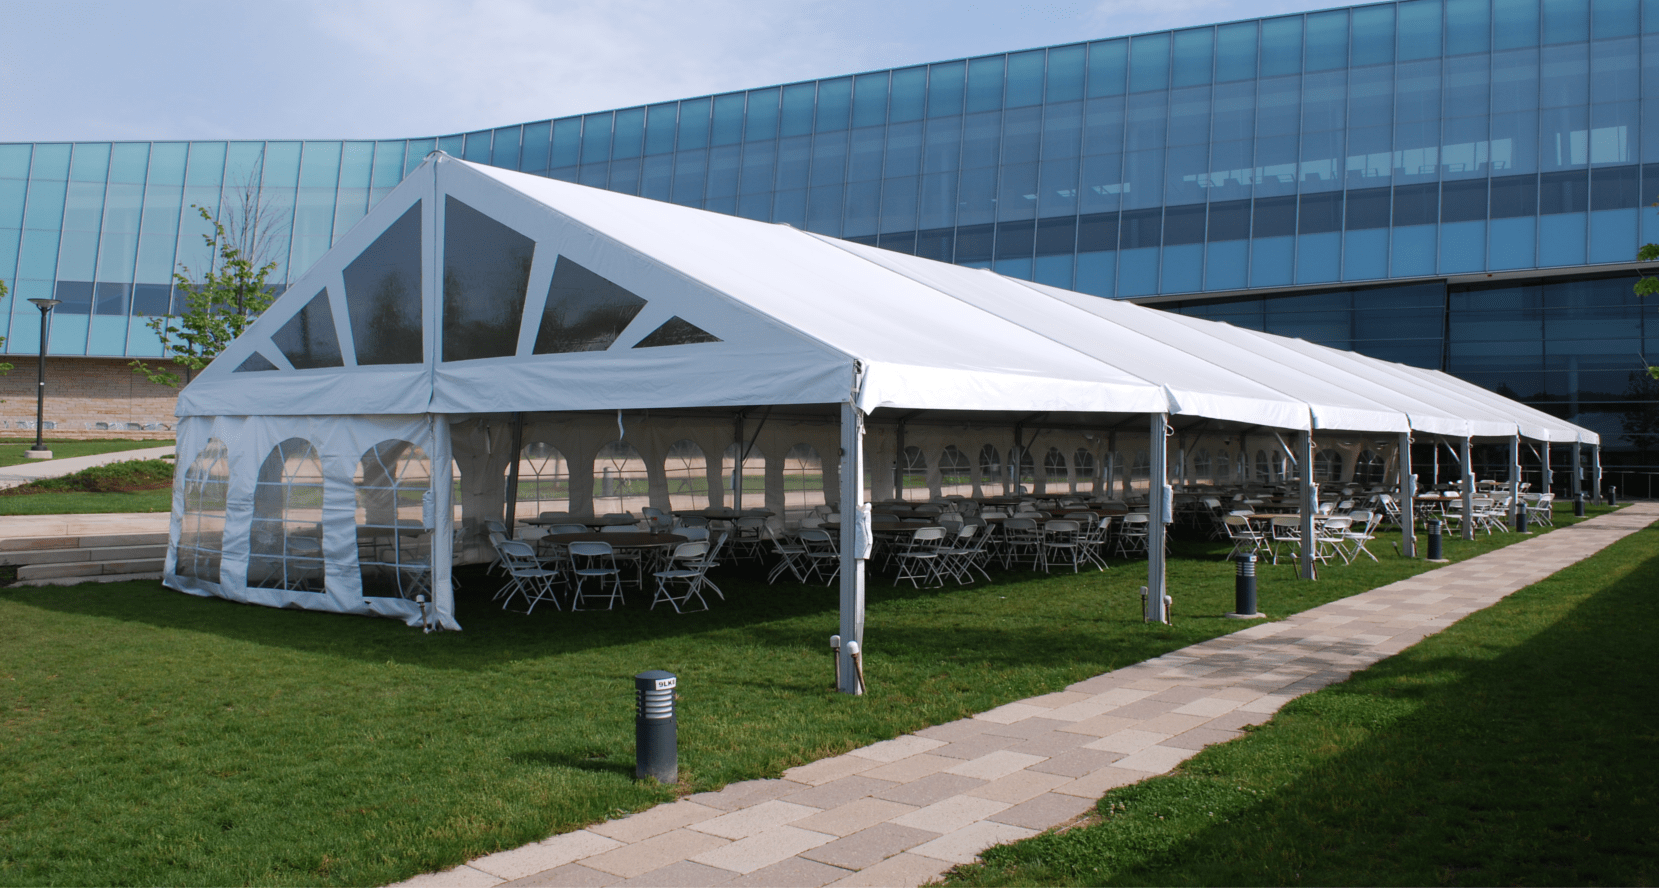 Frame Tents For Sale - Manufacturer SA - Buy Big Frame Tents